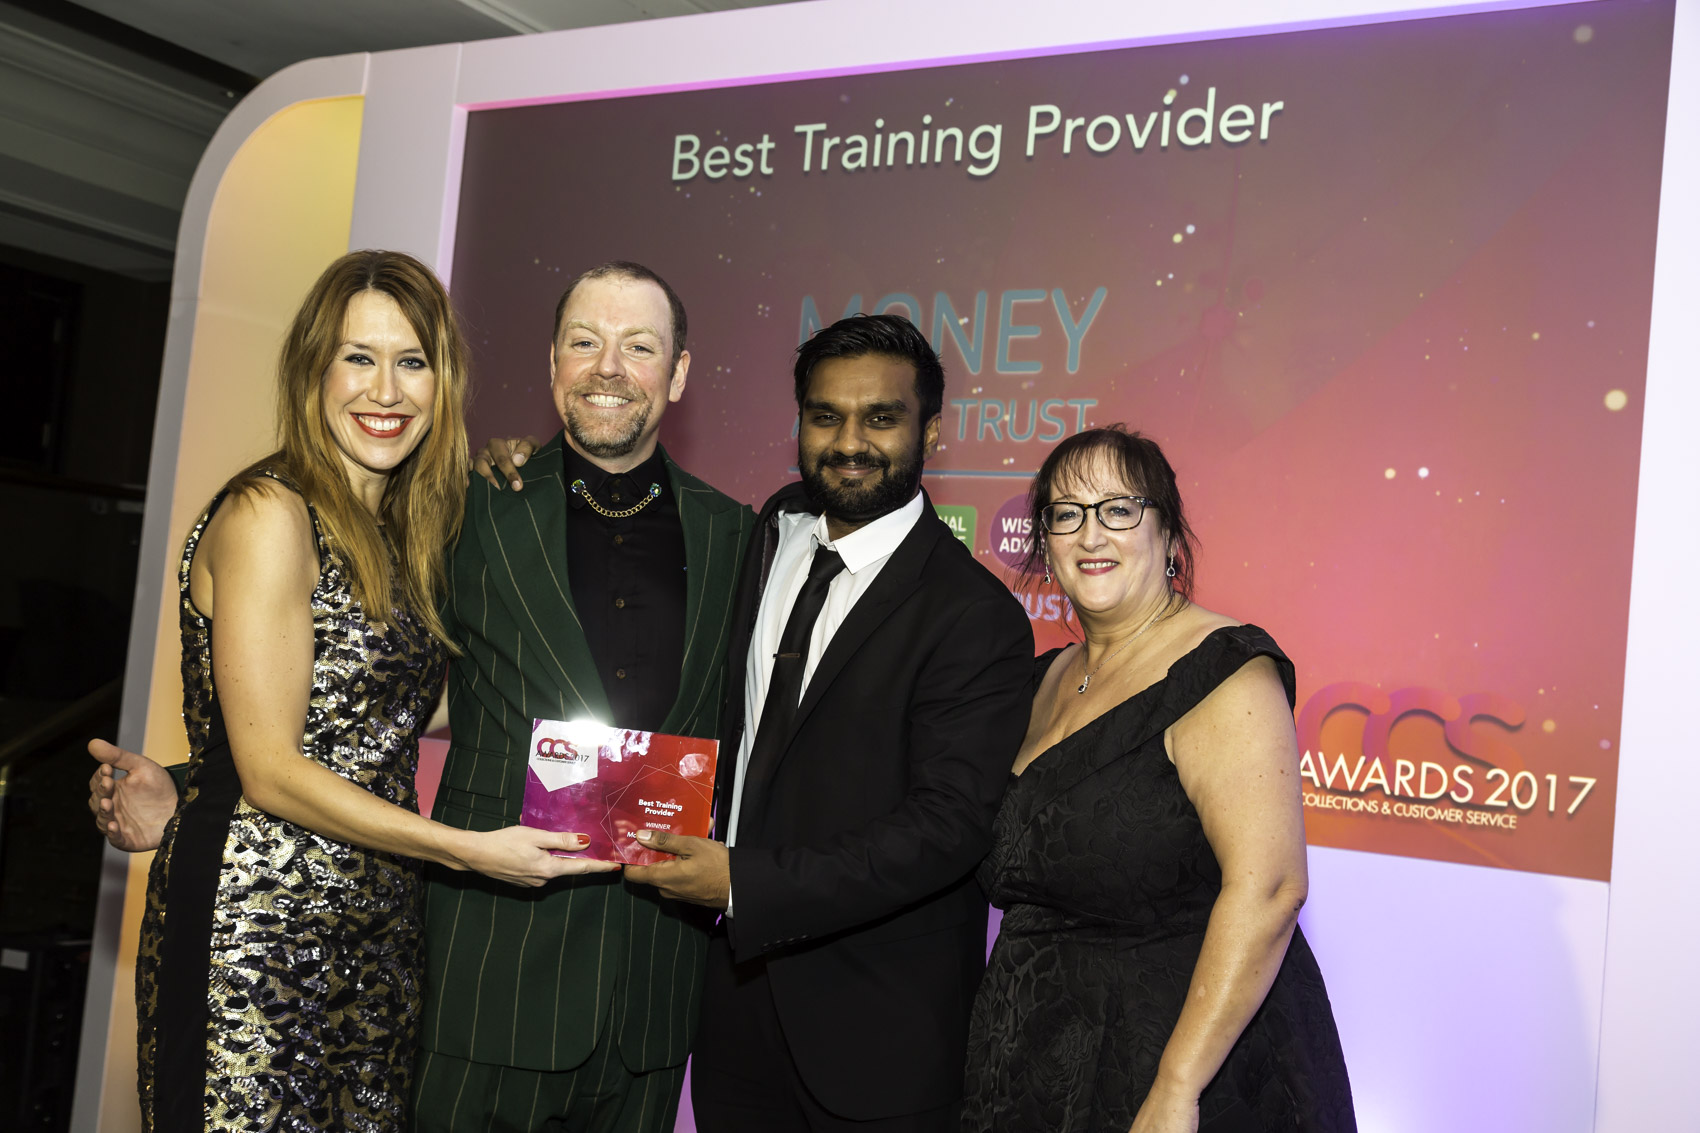 Winners CCS 2017 - 11 Best Training Provider